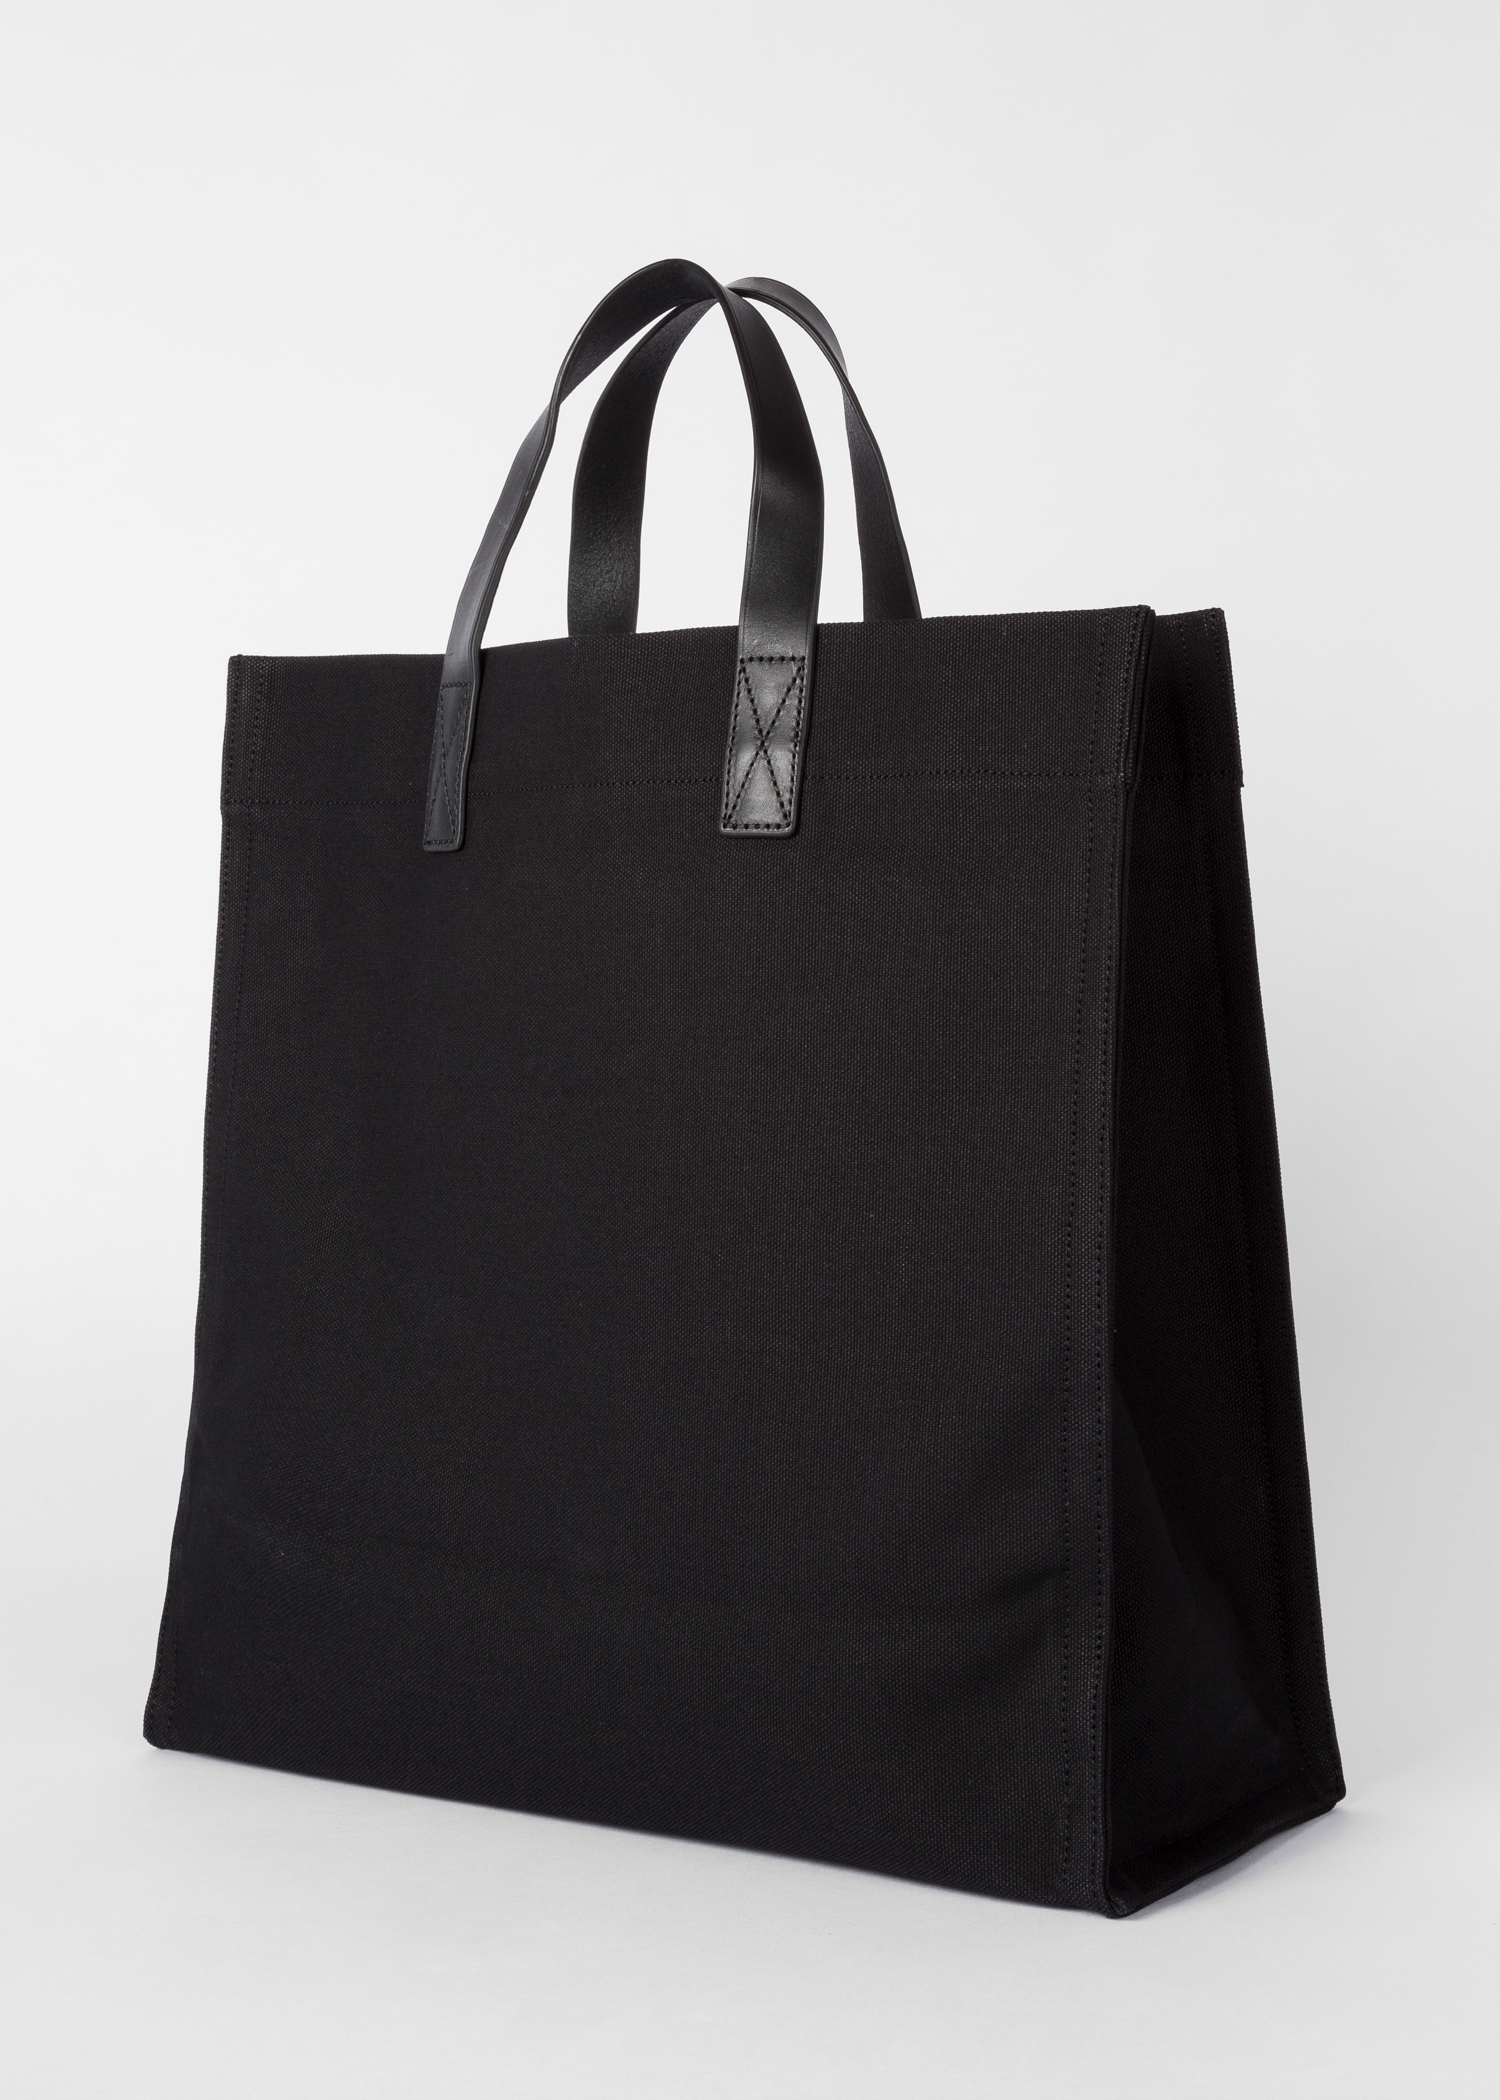 2eeb1fa150f0 Artful Lives Shark  Black Canvas Tote Bag - Paul Smith Australia